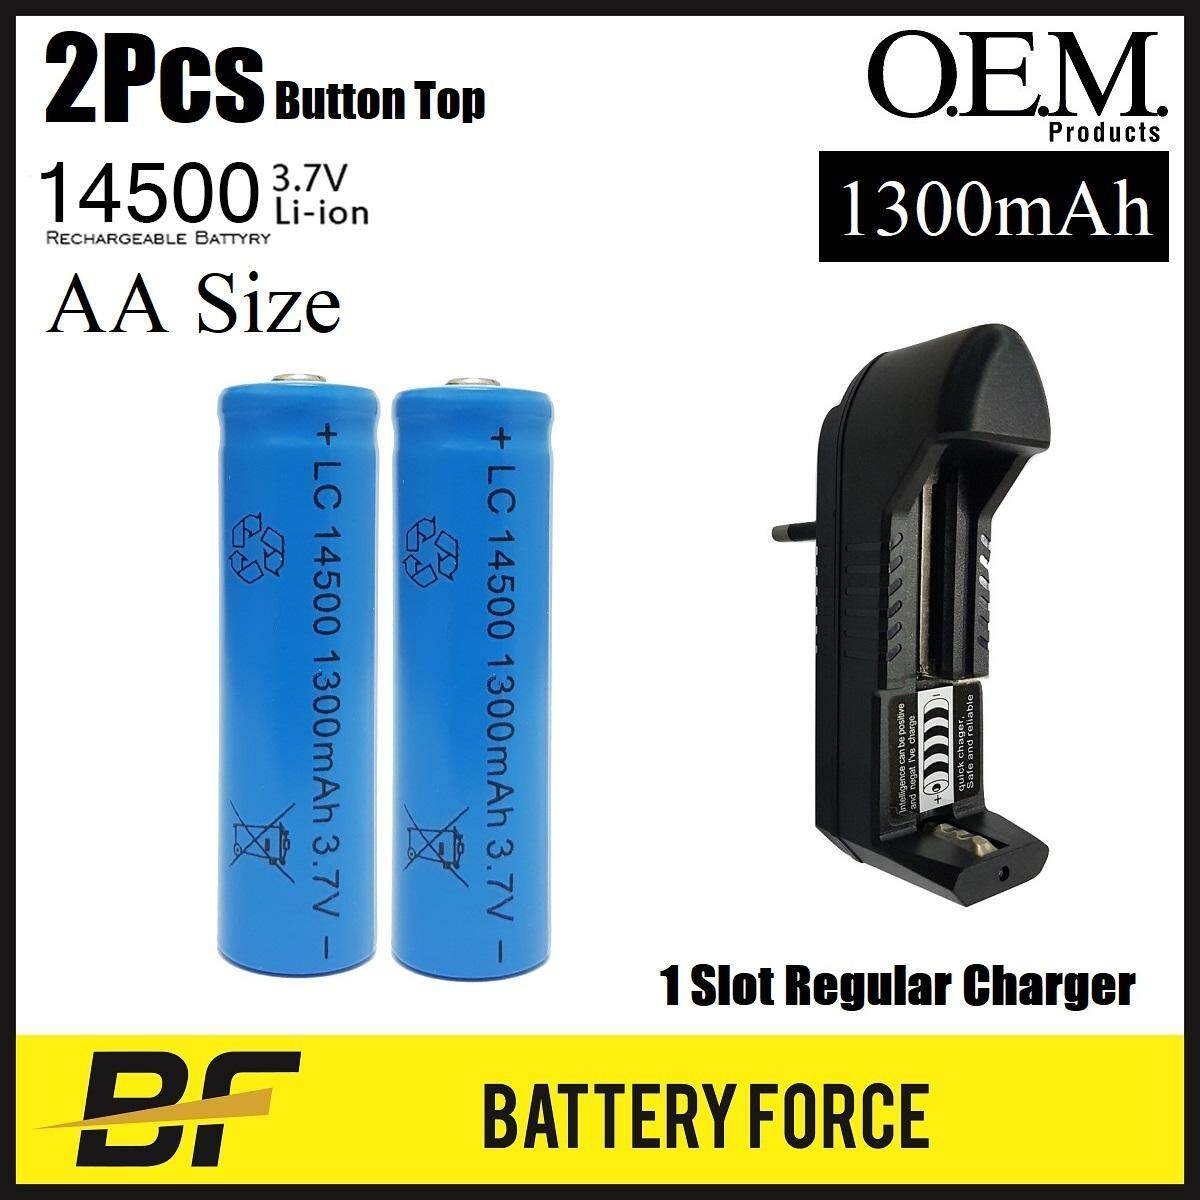 Combo 3.7v Aa Rechargeable Li-Ion Battery 14500 1300mah Lithium W 1 Slot Charger By Battery-Force.